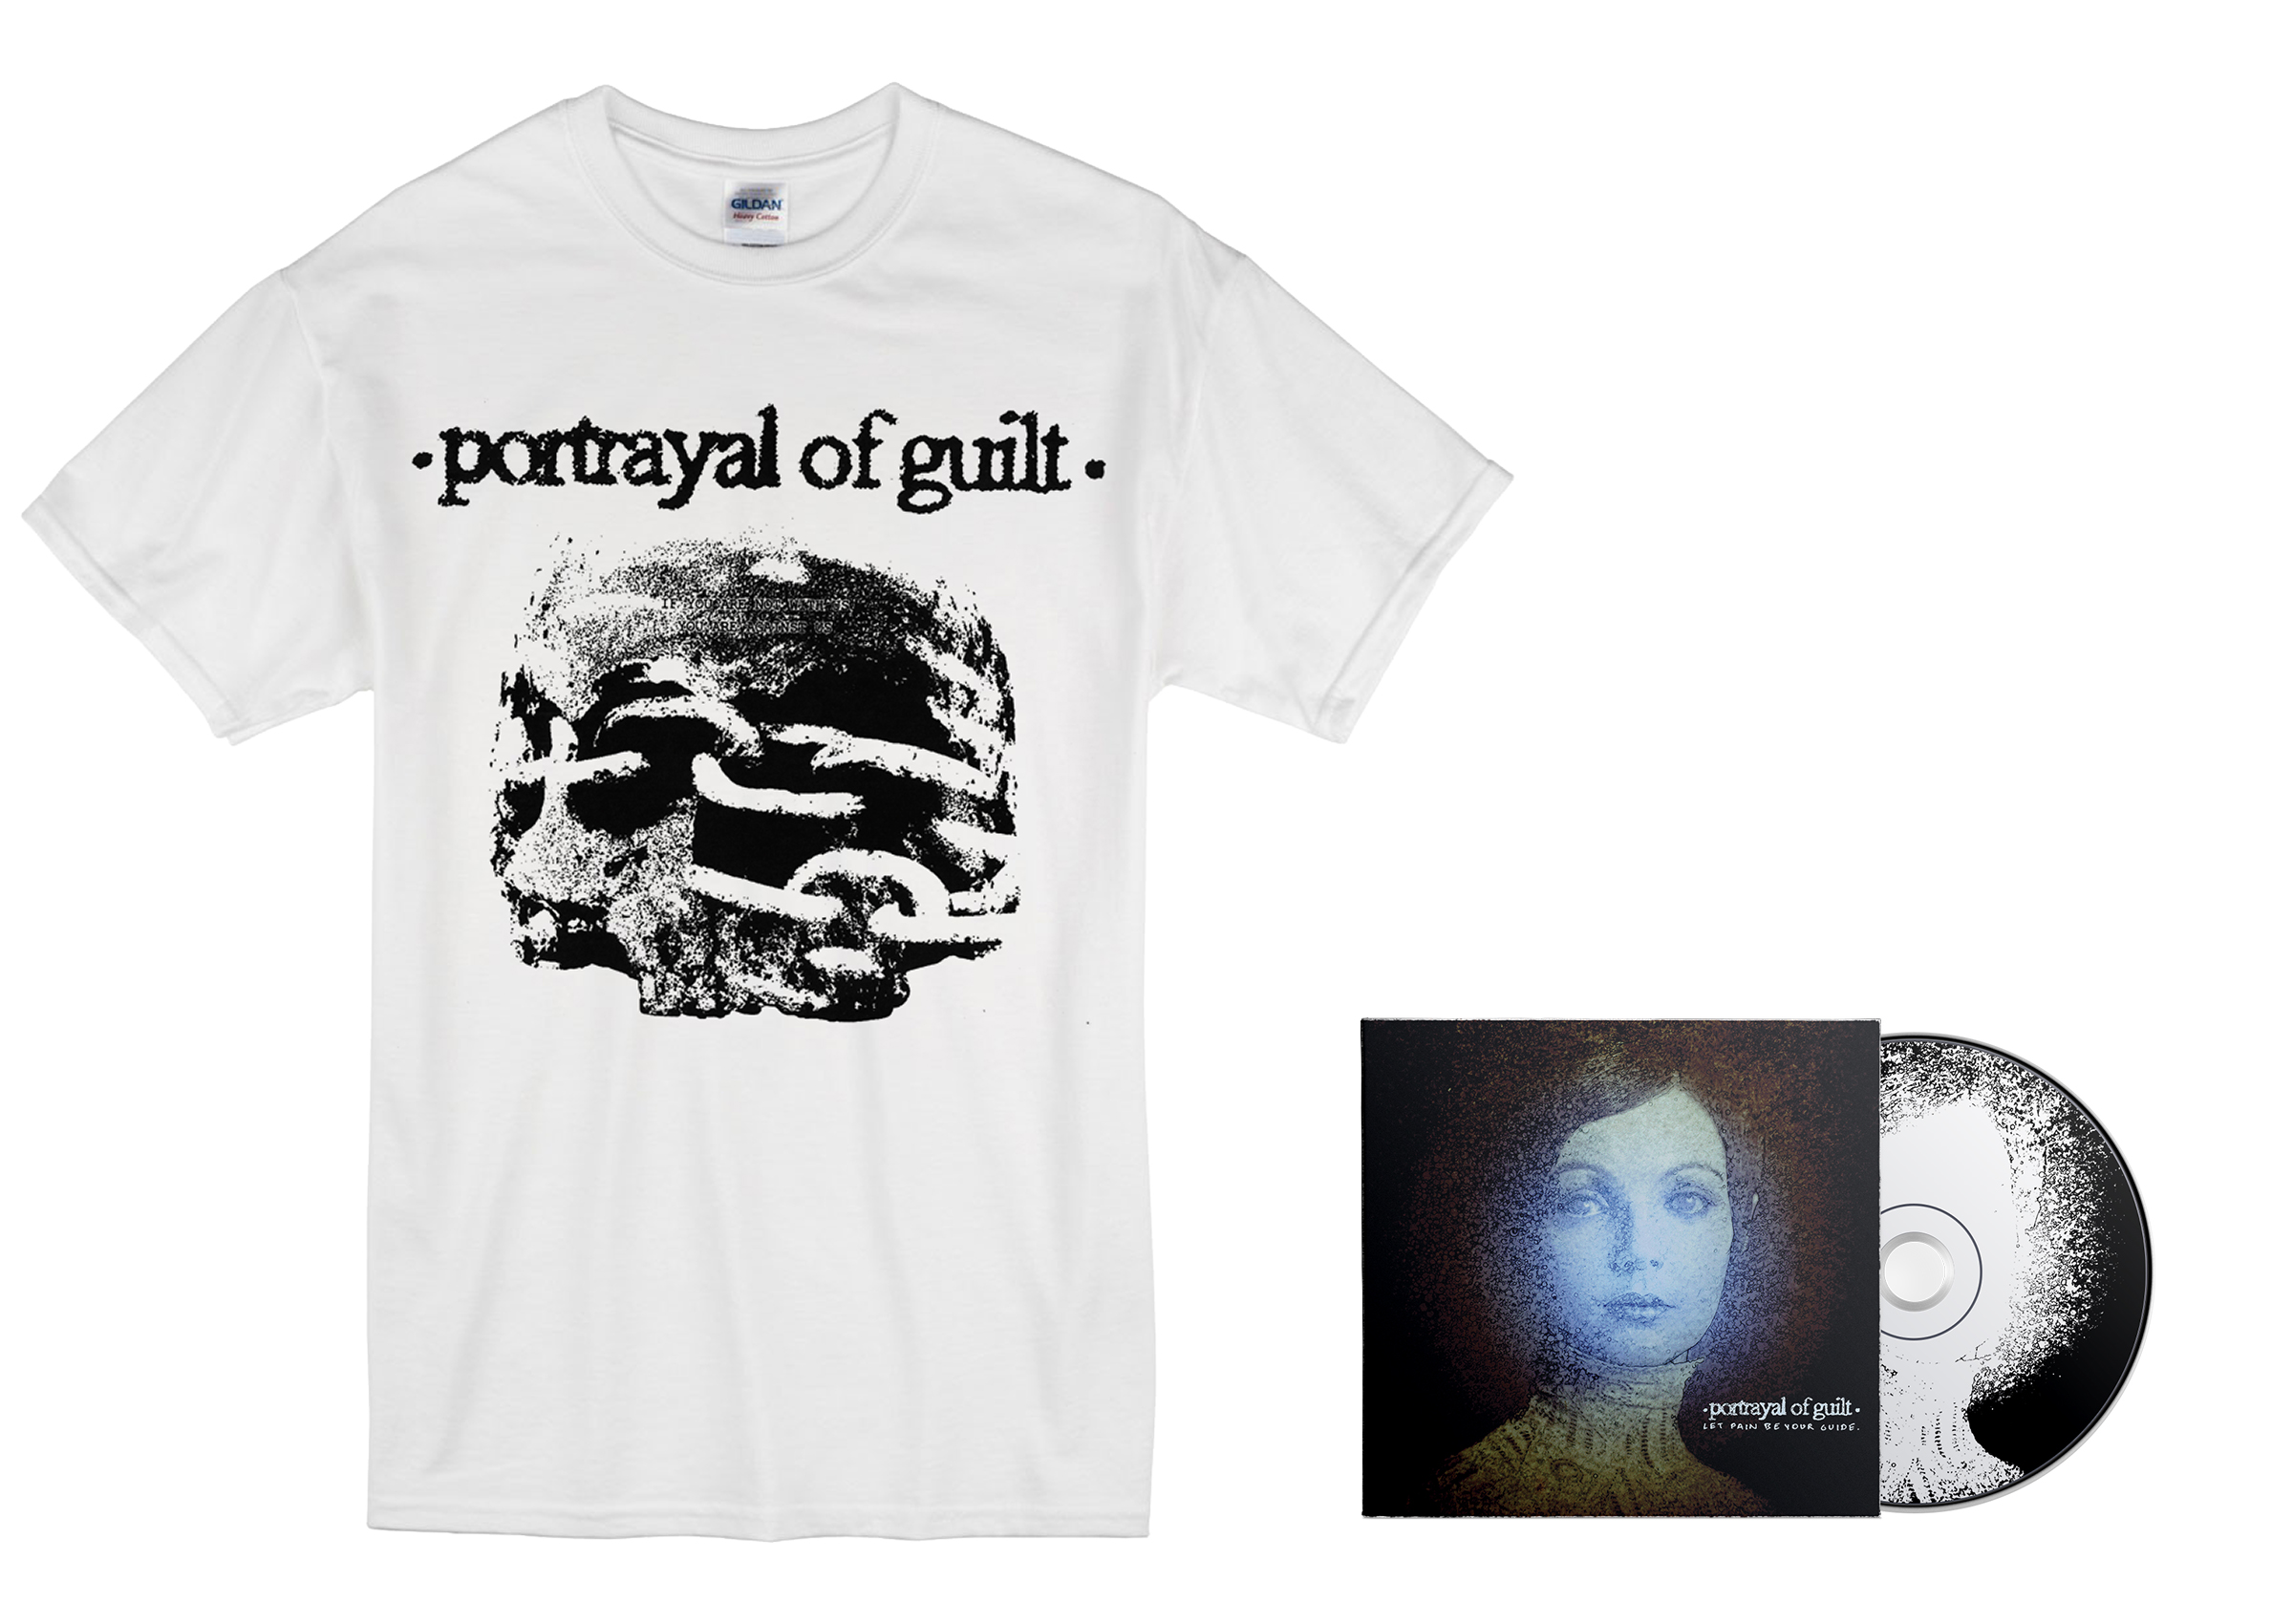 Portrayal of Guilt - 'Let Pain Be Your Guide' skull shirt + CD